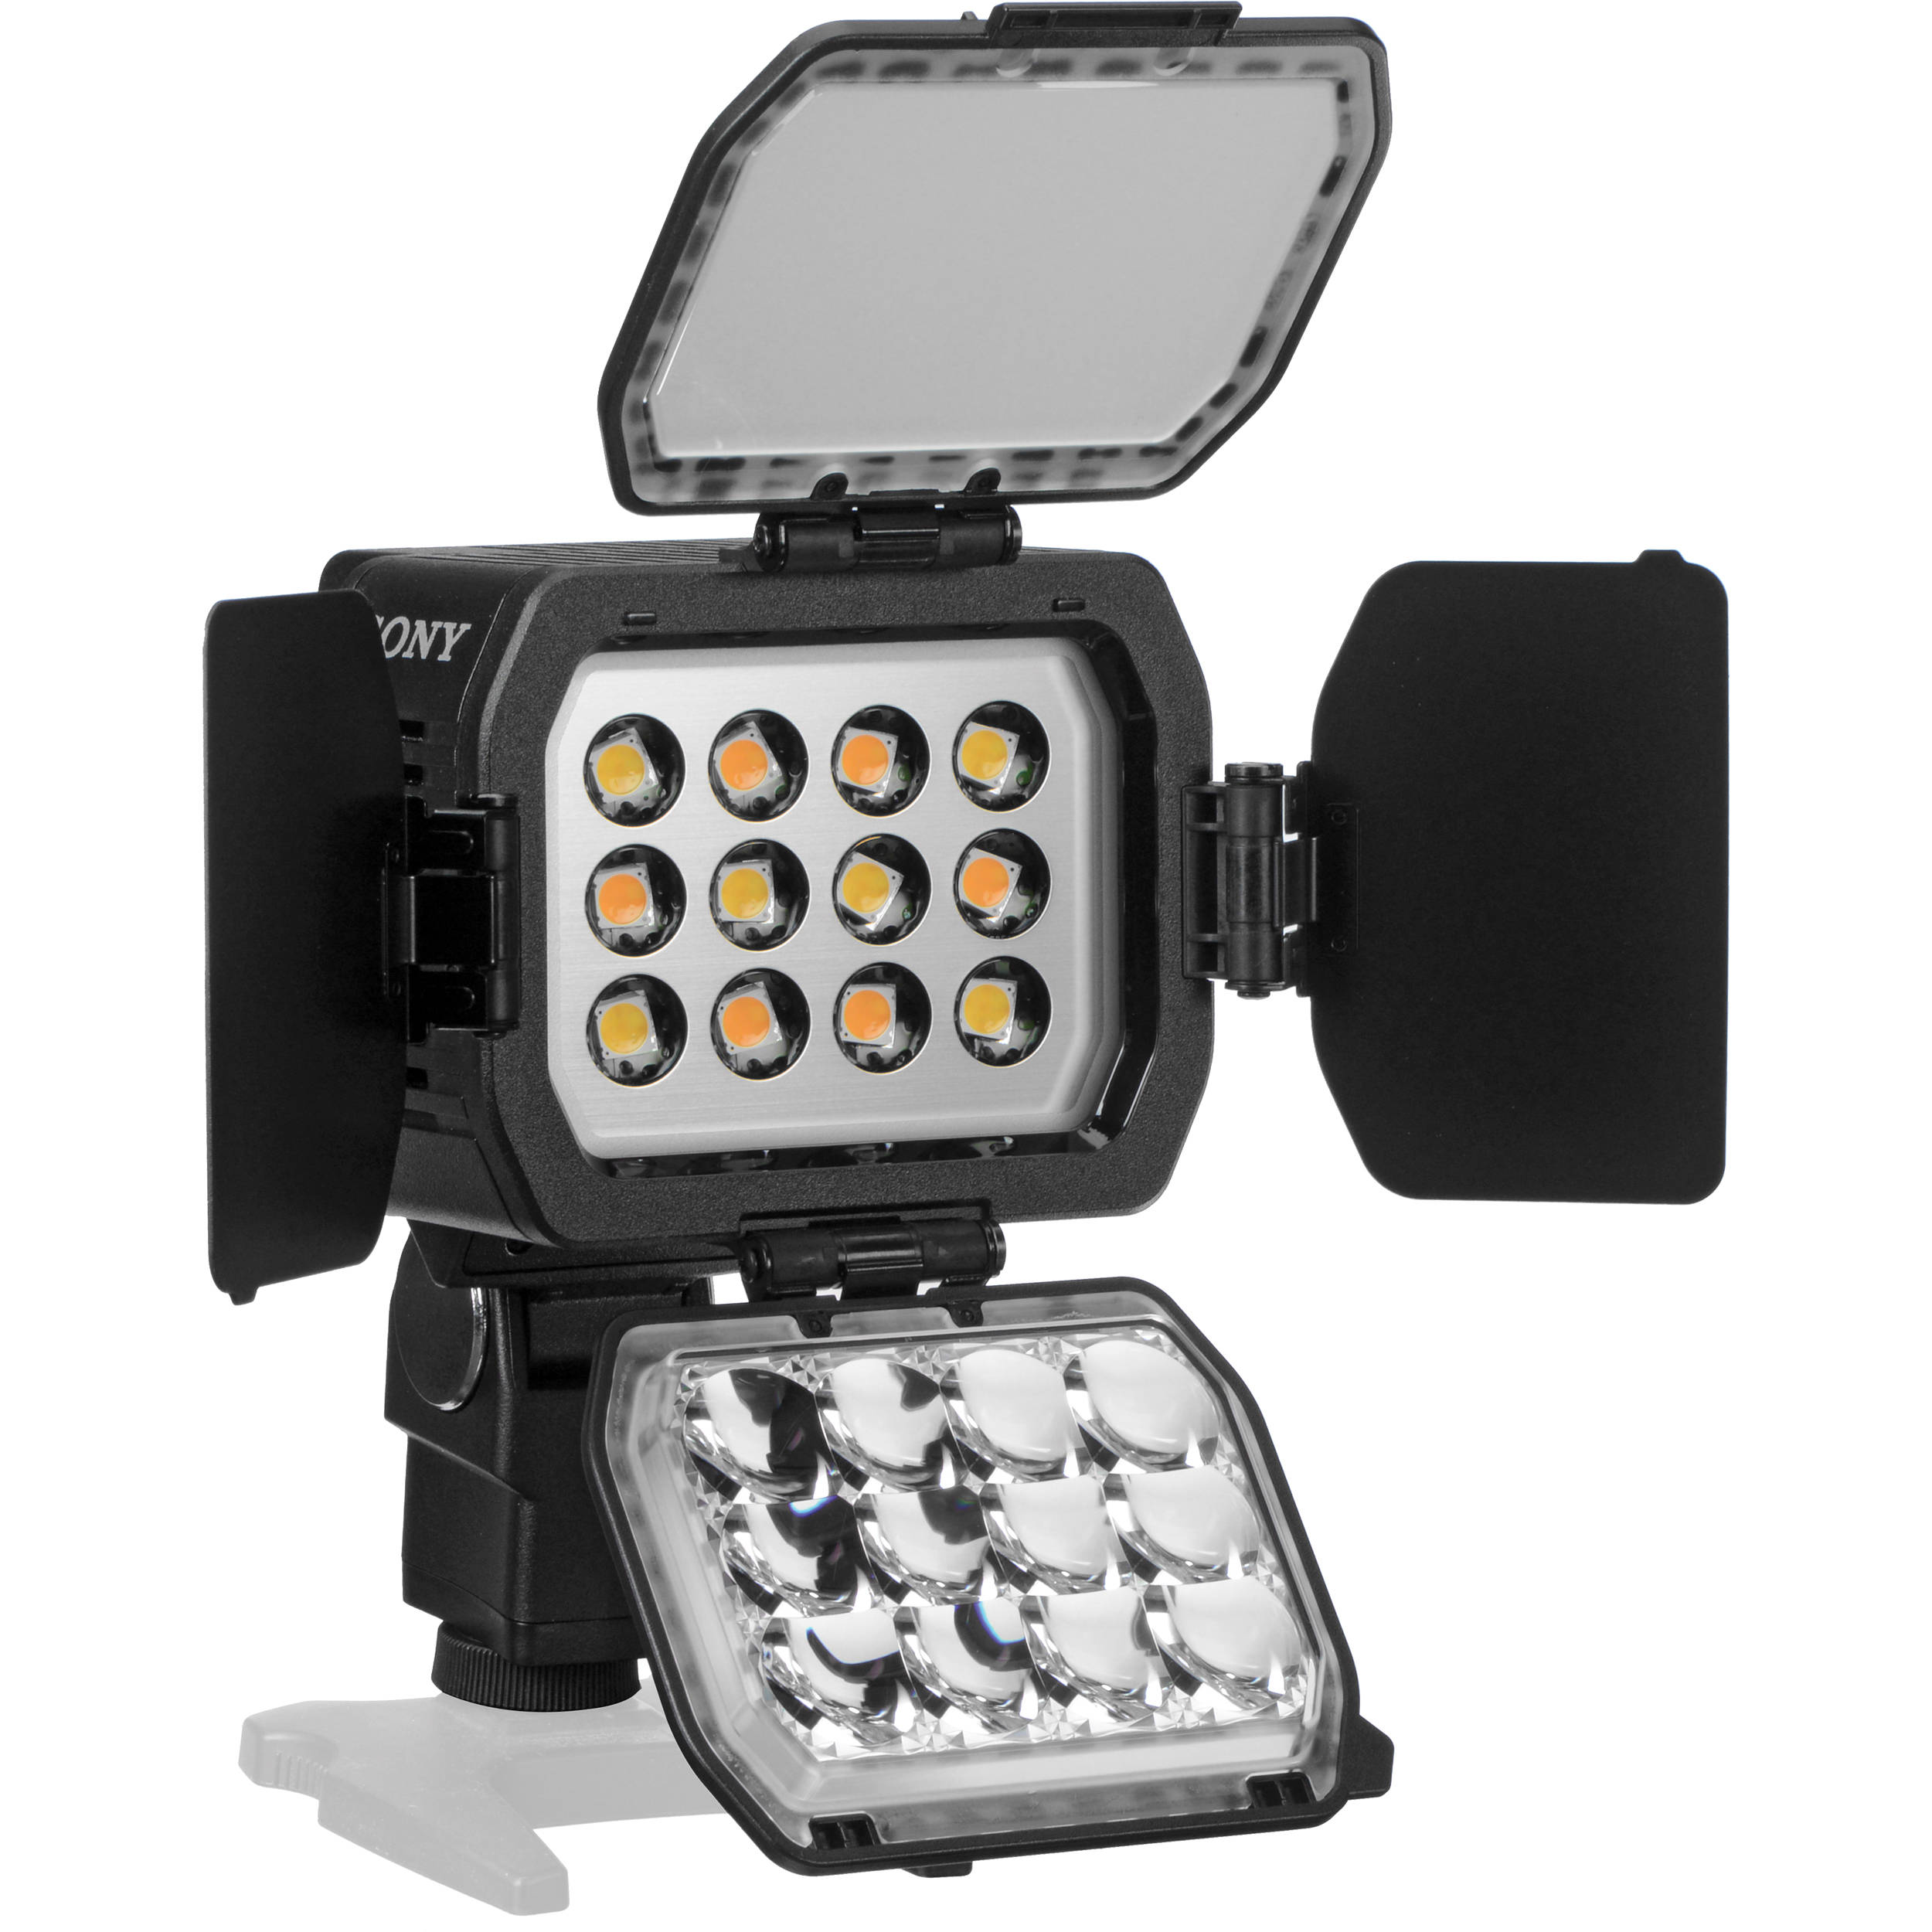 video product professional kit led studio vidpro lighting vdp